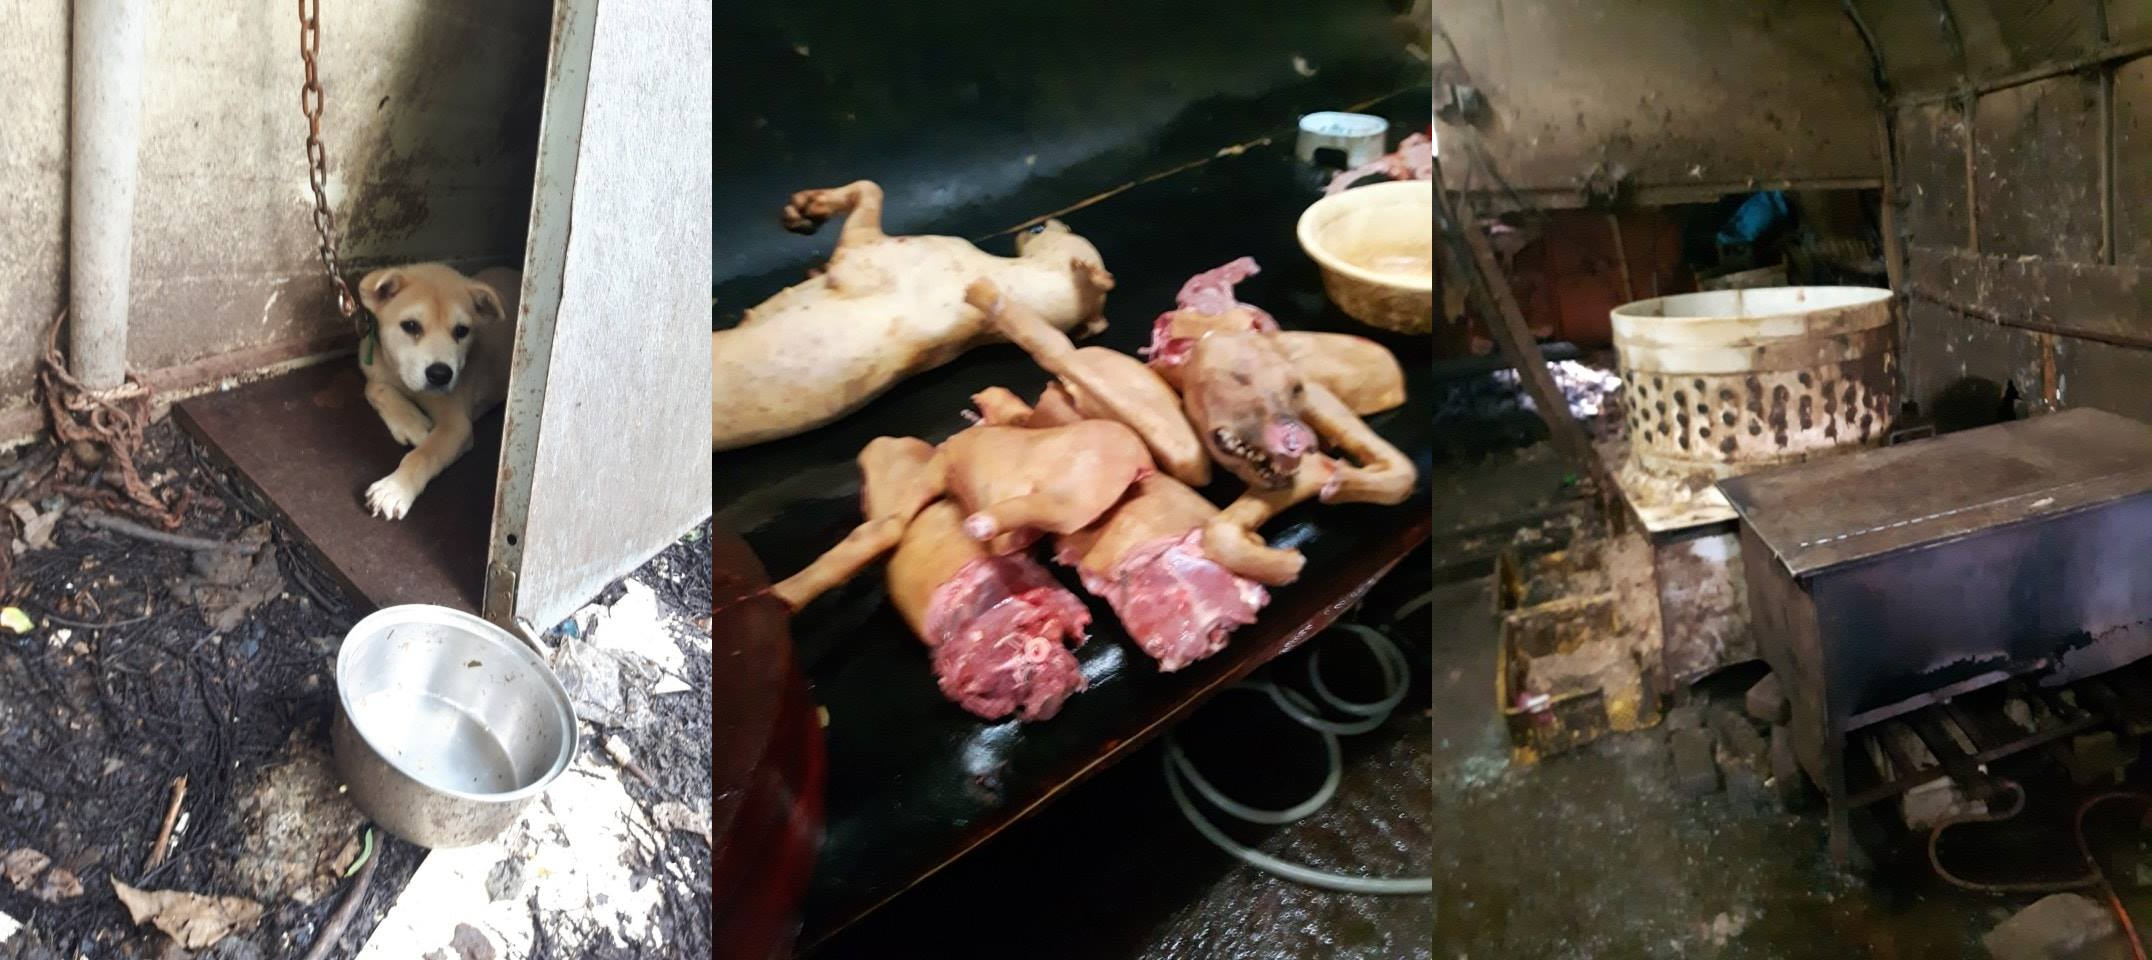 South Koreans: start taking responsibility for enforcing your own country's laws: stop the illegal dog and cat meat trades.